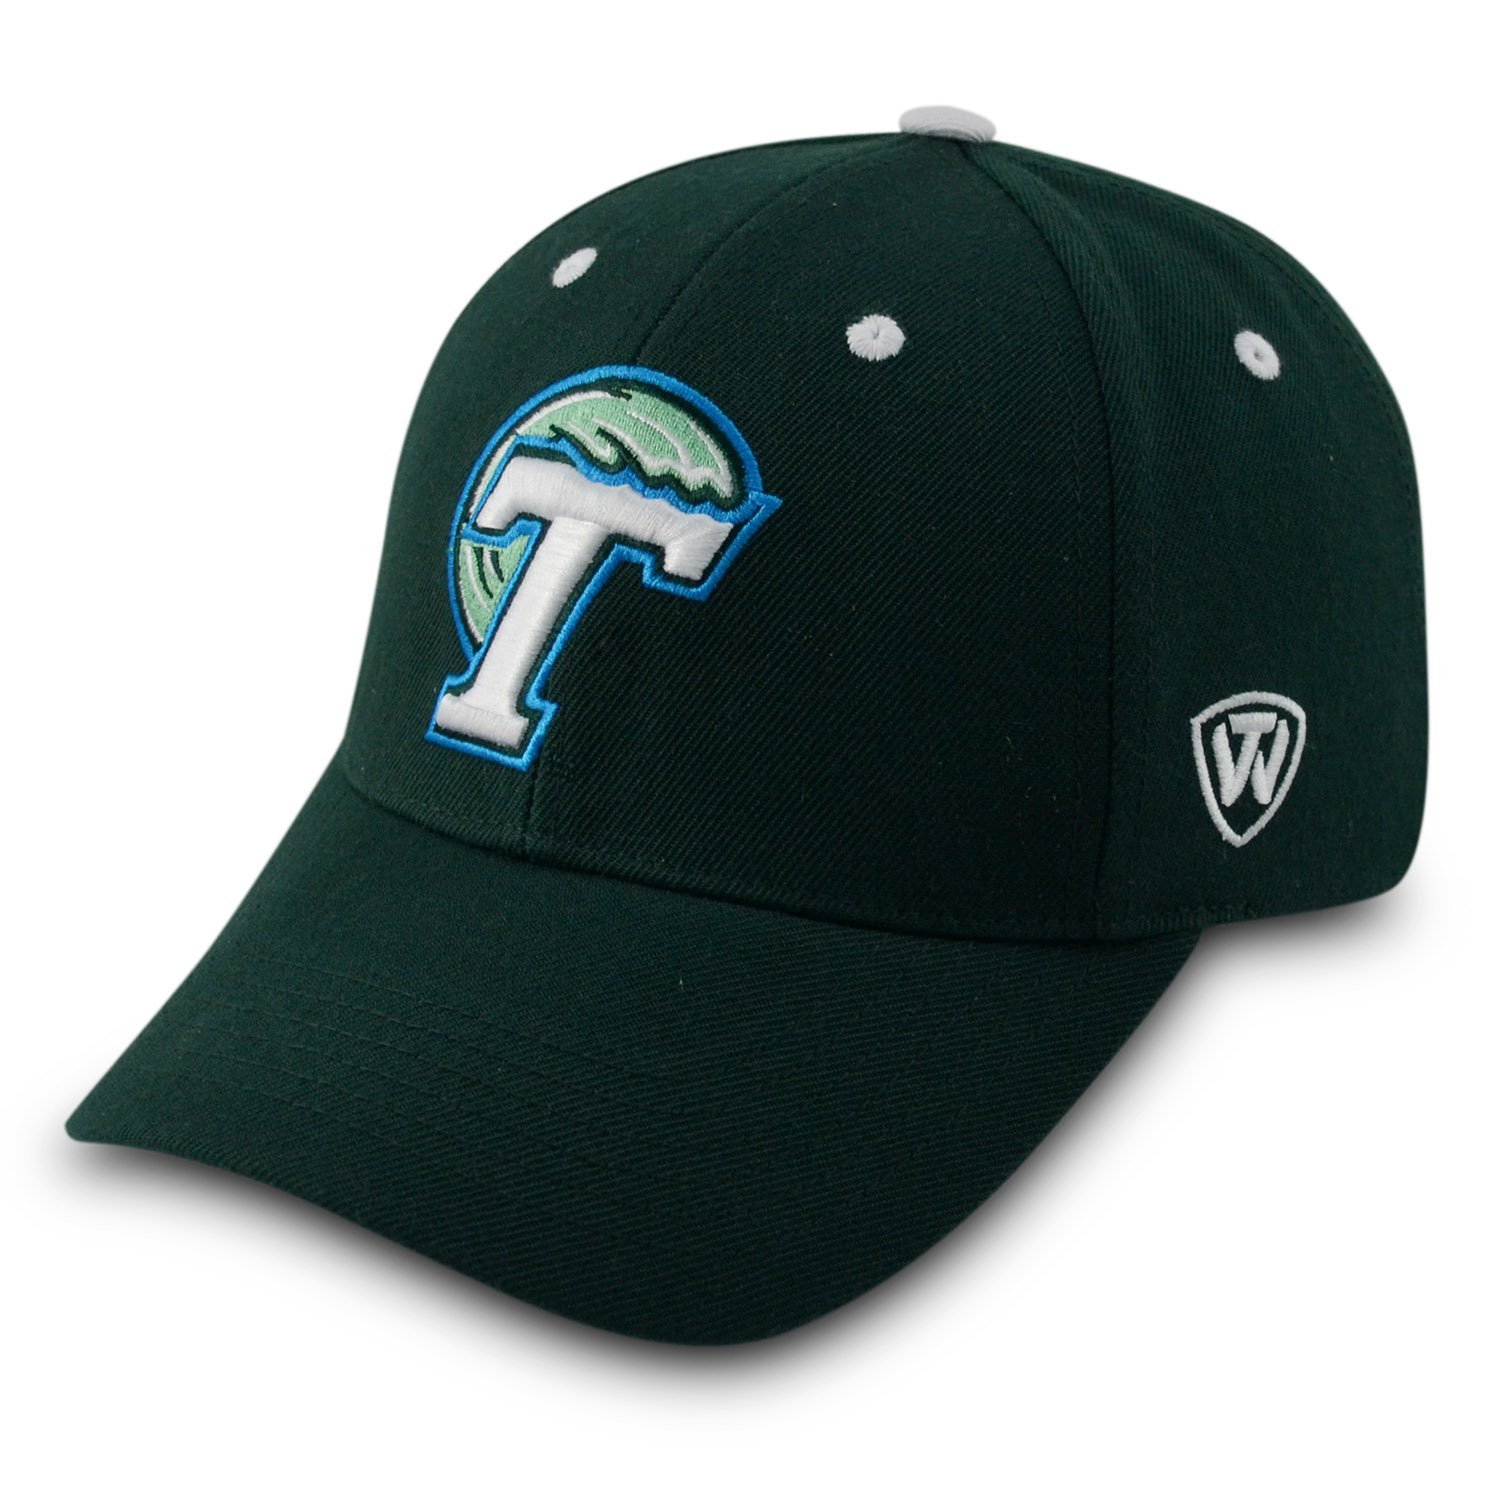 Top of the World Tulane Green Wave Triple Threat帽子グリーン   B07CT61N8D